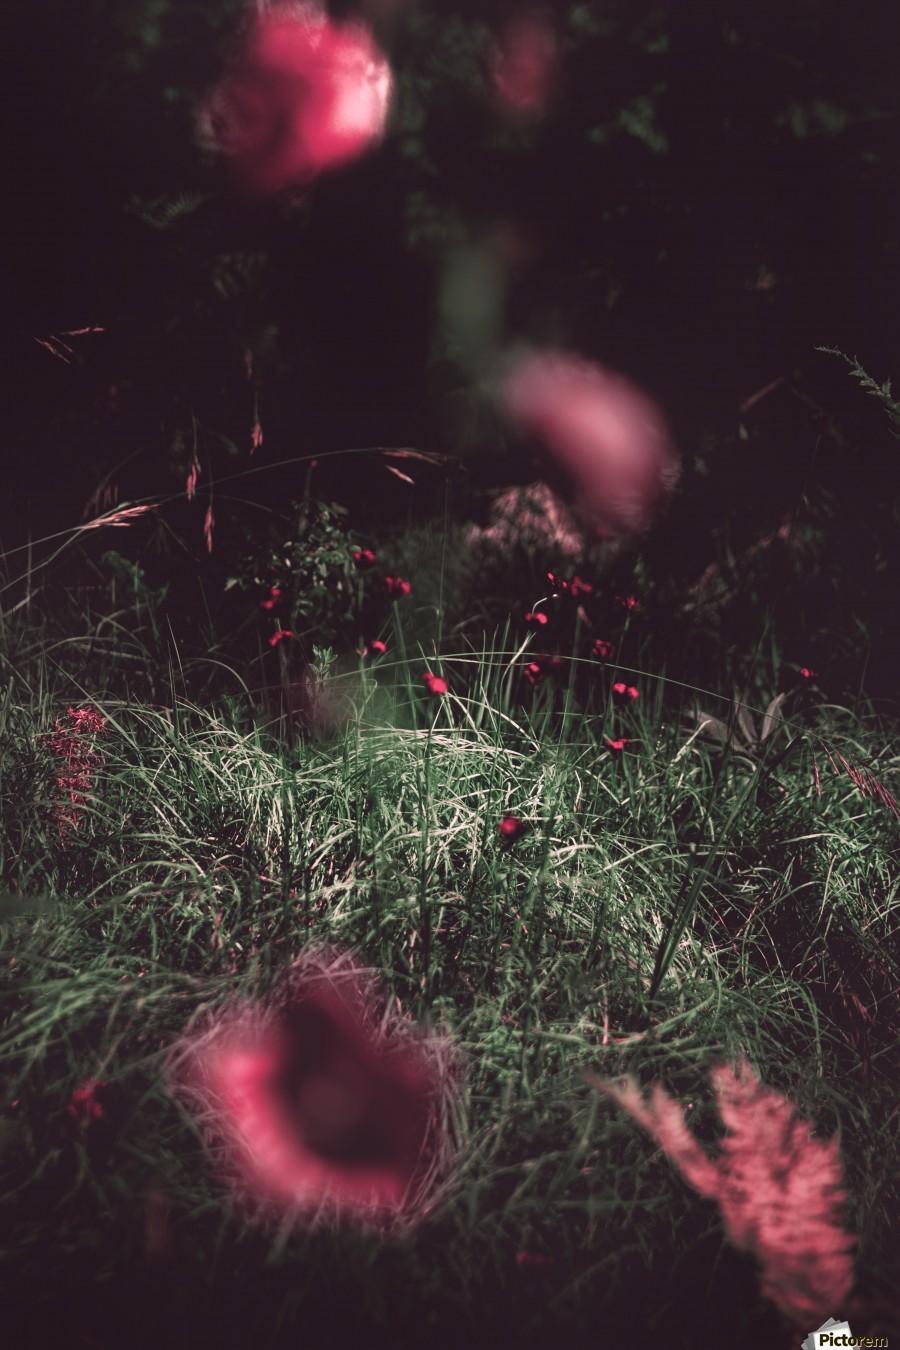 Redness  , Marko Radovanovic , flower, grass, red, red_flower, forest, deep, close_up, blur, out_of_the_focus, ground, dark, serbia,  close, nature, fine_art,